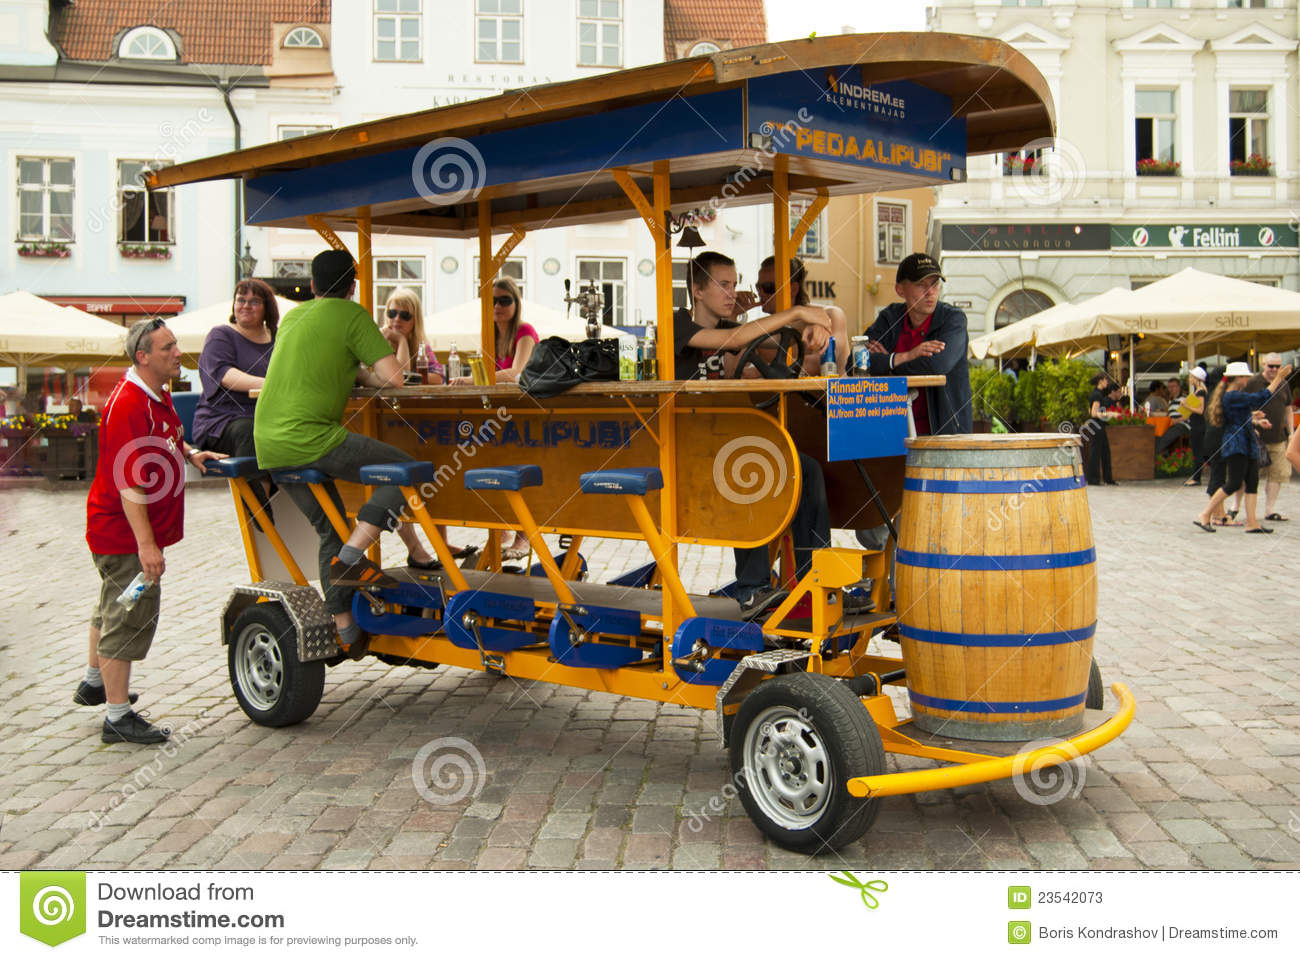 I Want to Operate a Party Bike, But Where Do I Begin